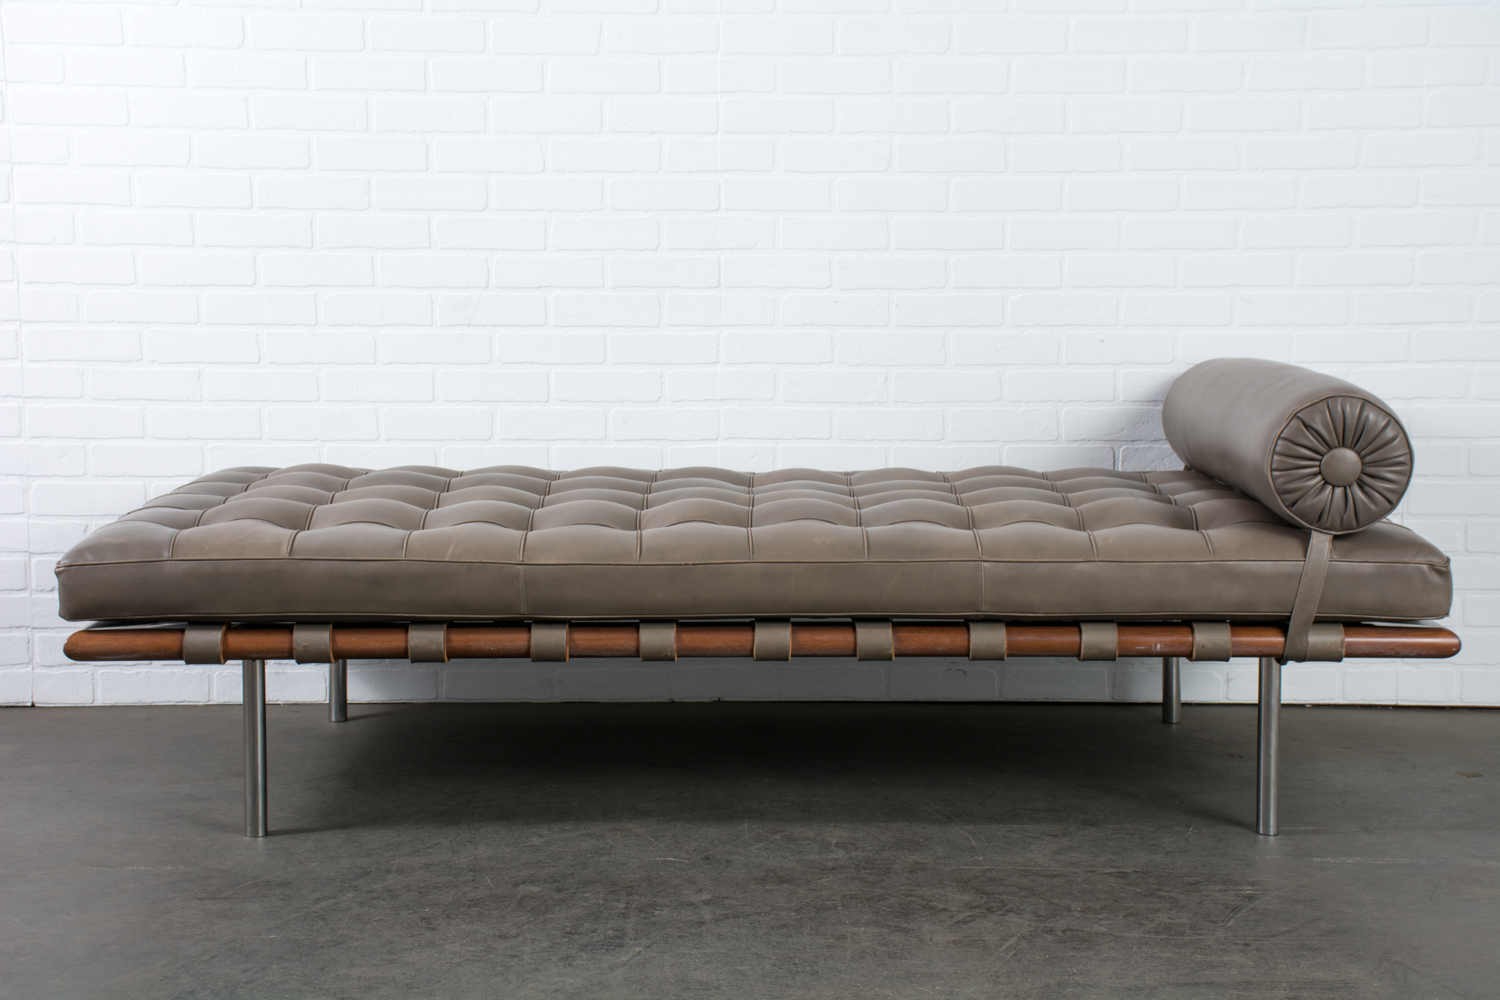 Barcelona Daybed Barcelona Daybed By Mies Van Der Rohe For Knoll